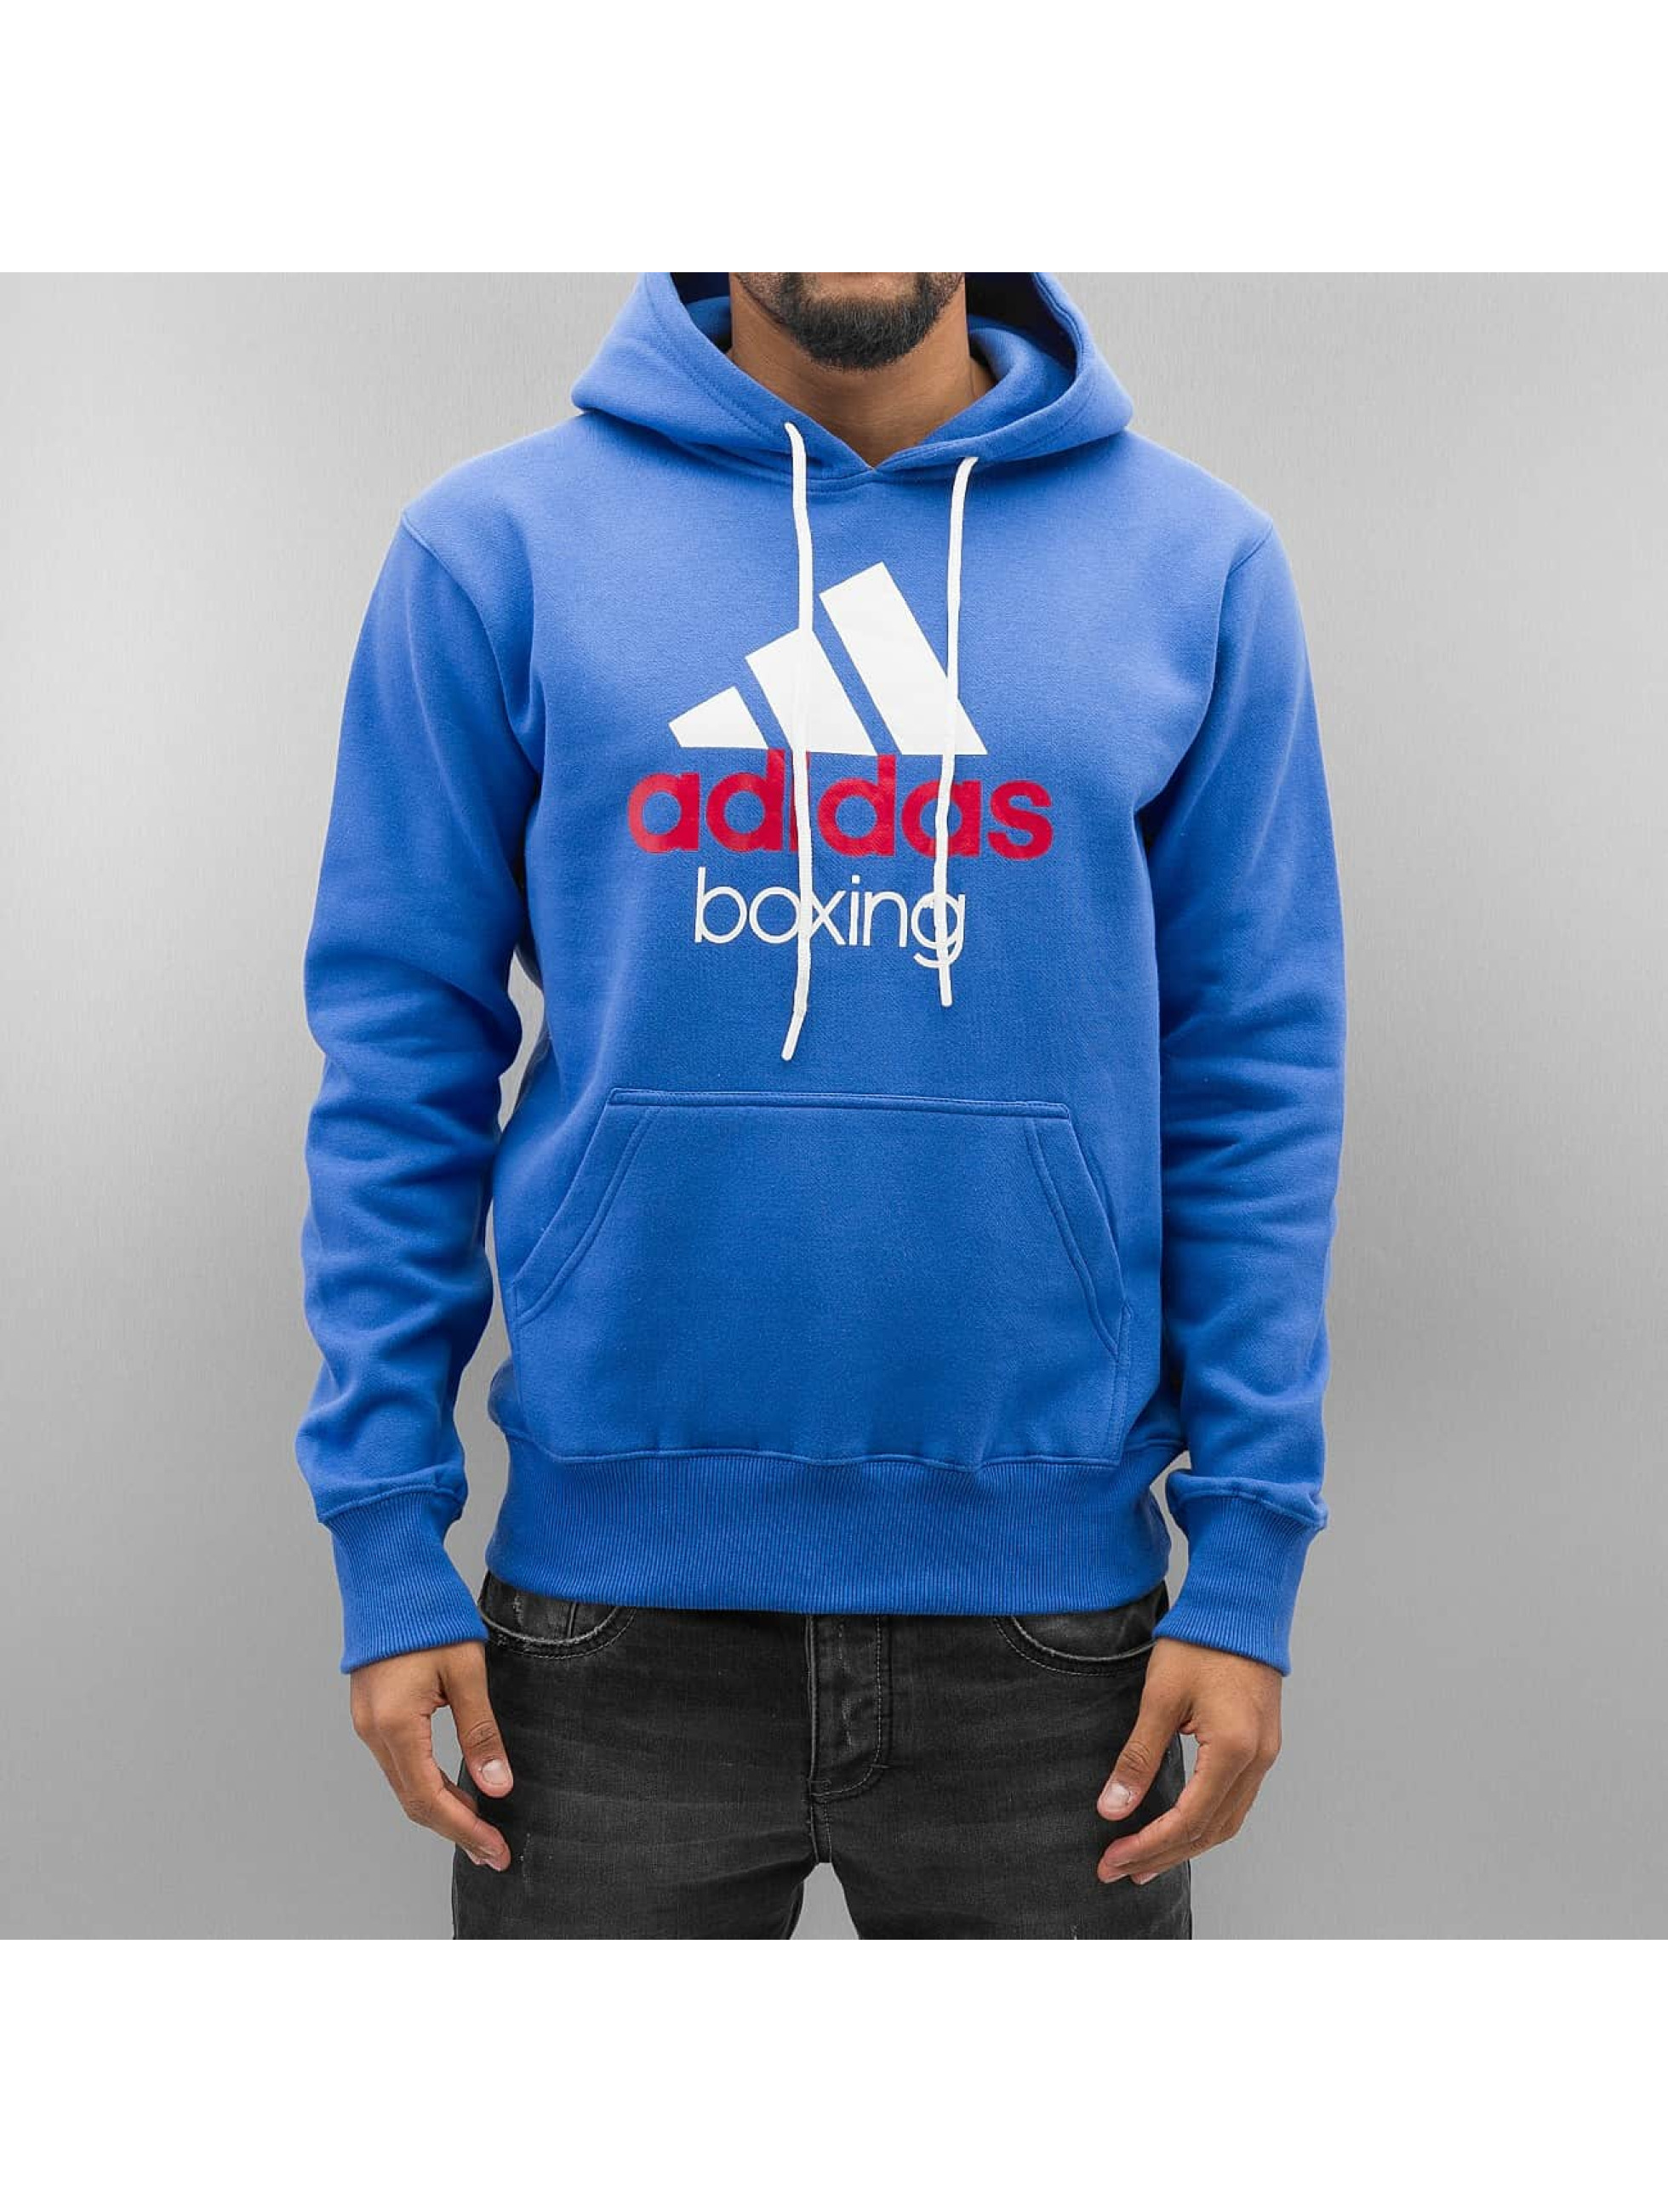 Adidas Boxing MMA / Hoodie Community in blue